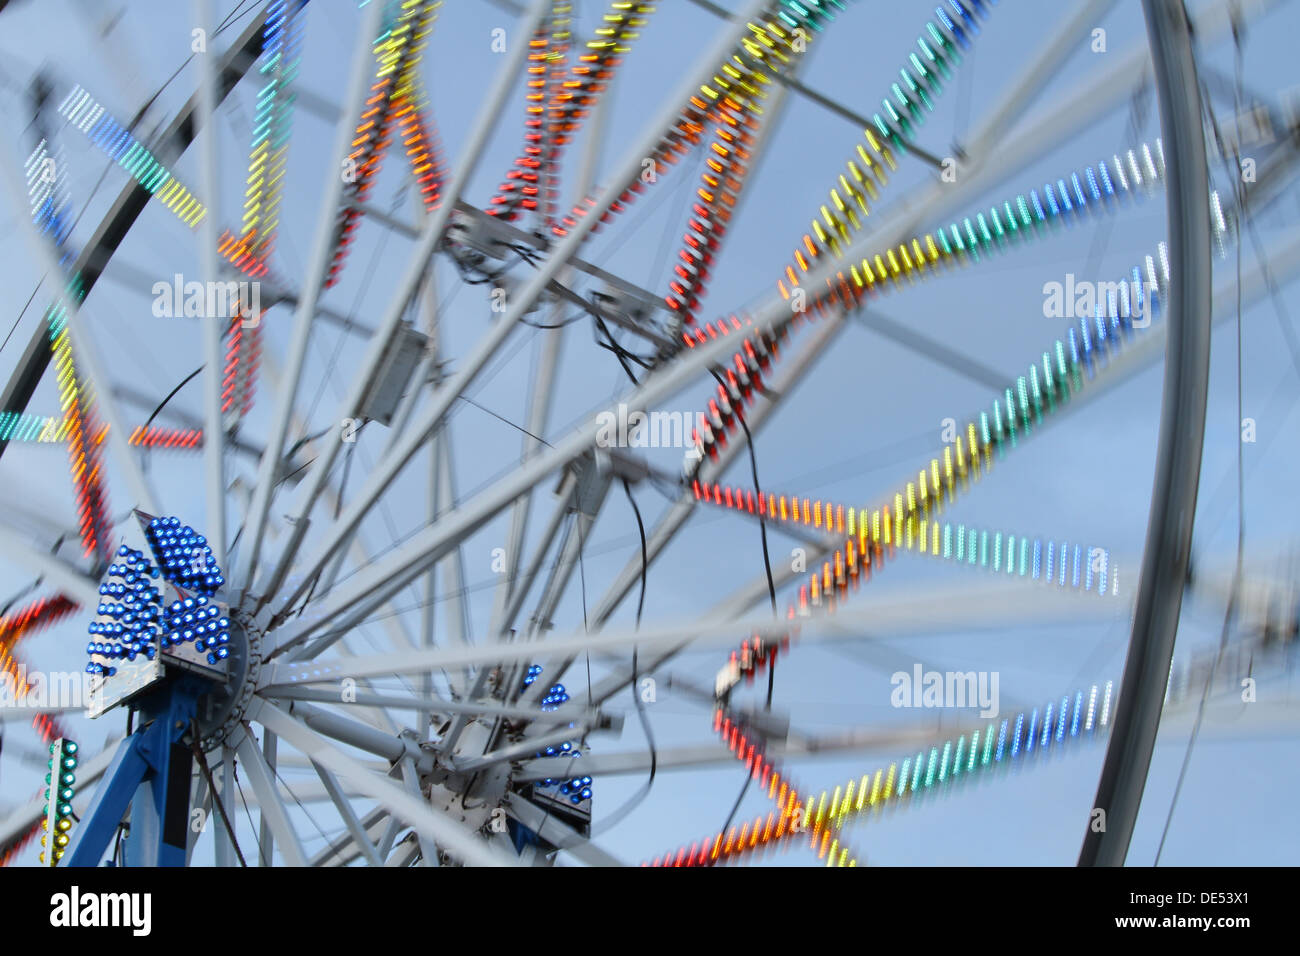 Ferris Wheel Motion Blur. Canfield Fair. Mahoning County Fair. Canfield, Youngstown, Ohio, USA. - Stock Image